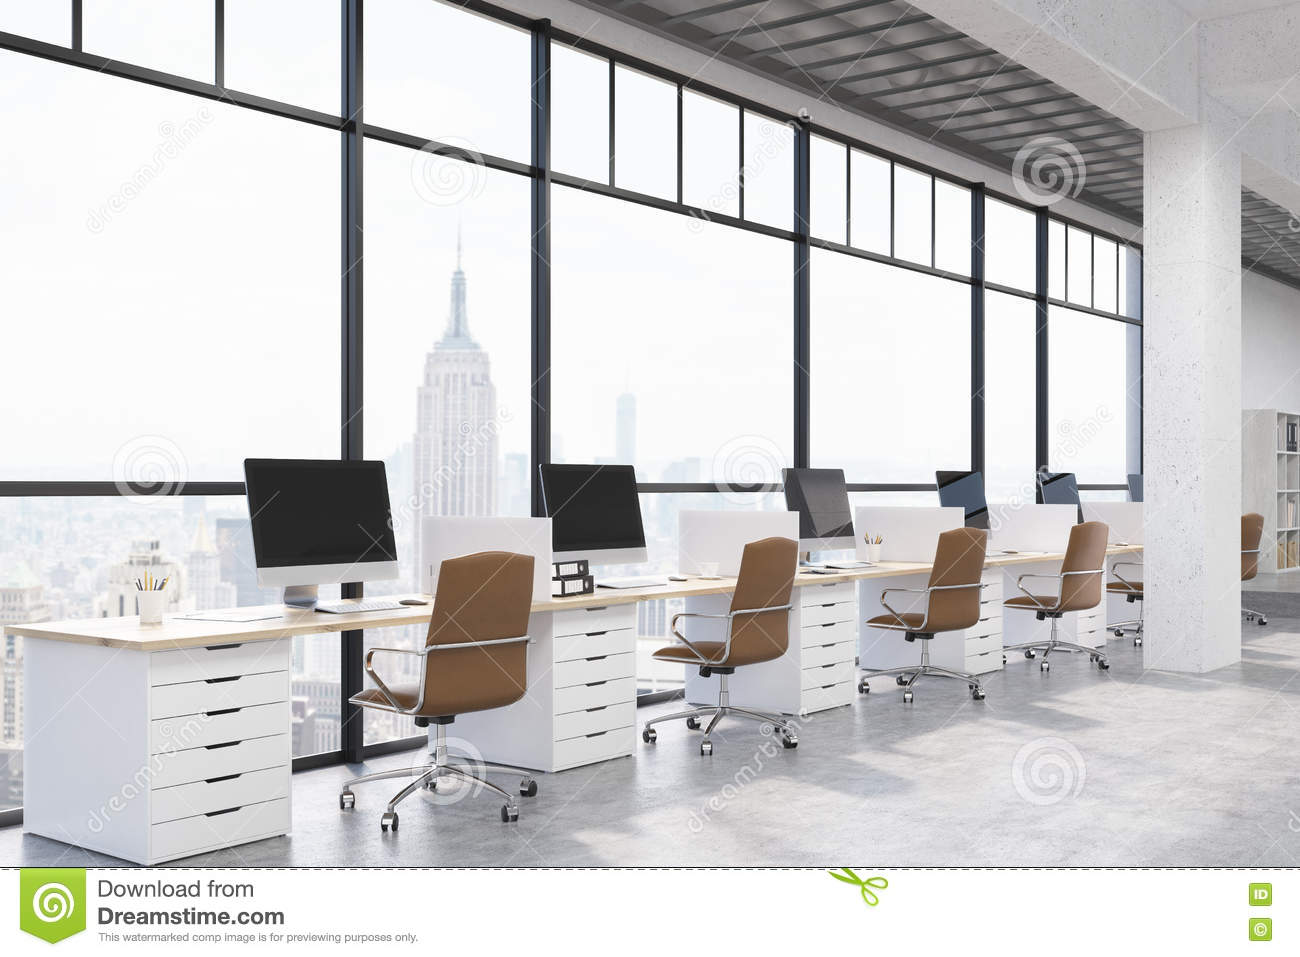 Royalty Free Illustration  Download New York City Modern Office. New York City Modern Office Interior Stock Illustration   Image